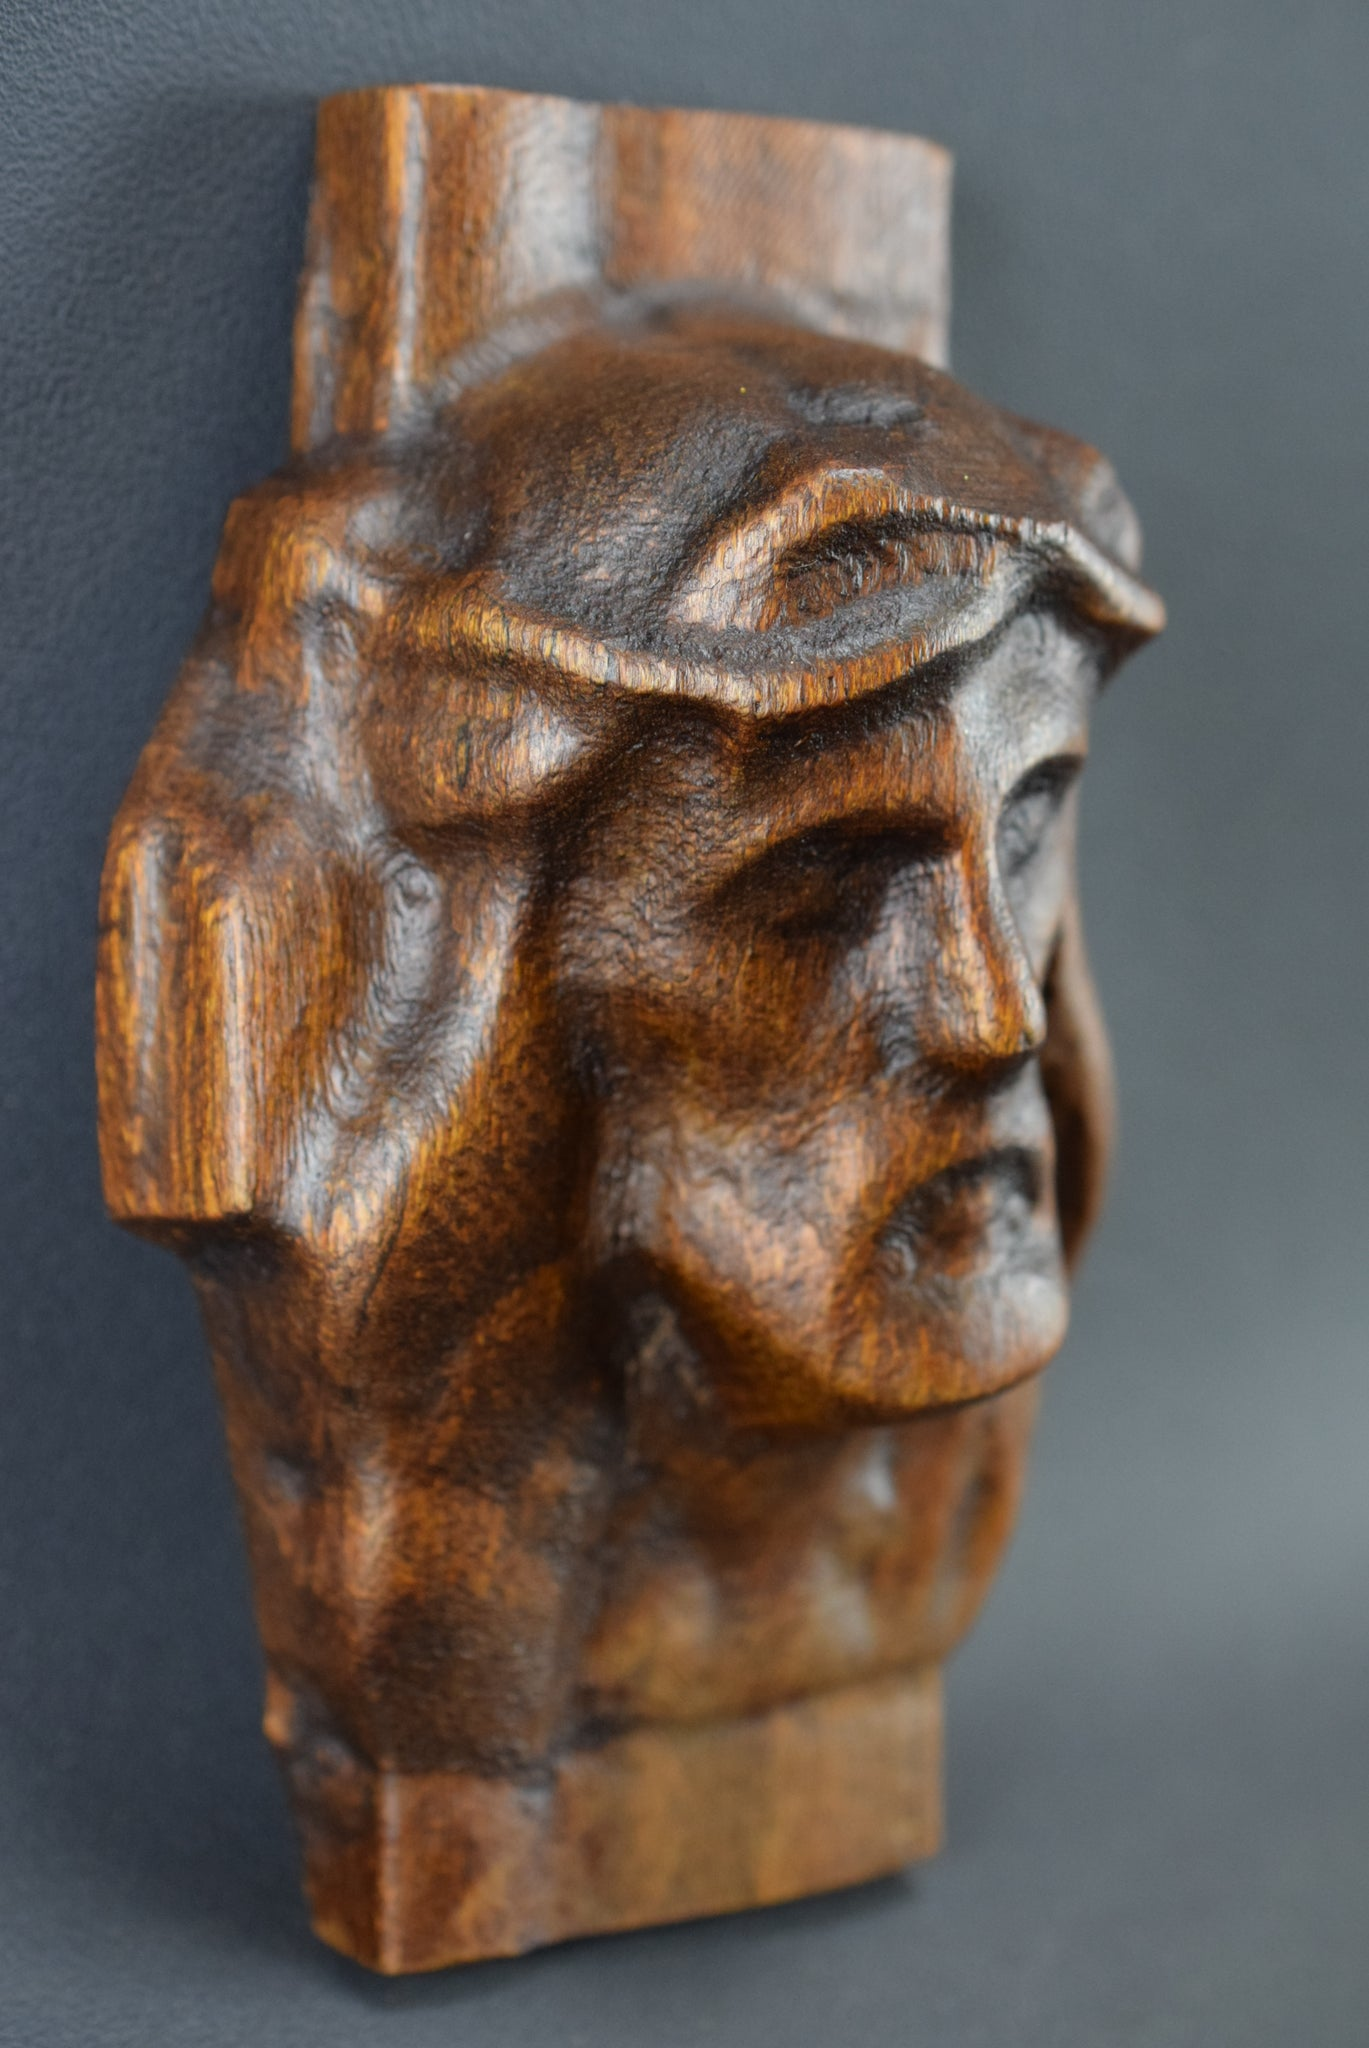 French Vintage Carved Wood Holy Face of Jesus Sculpture Carving Wall Panel